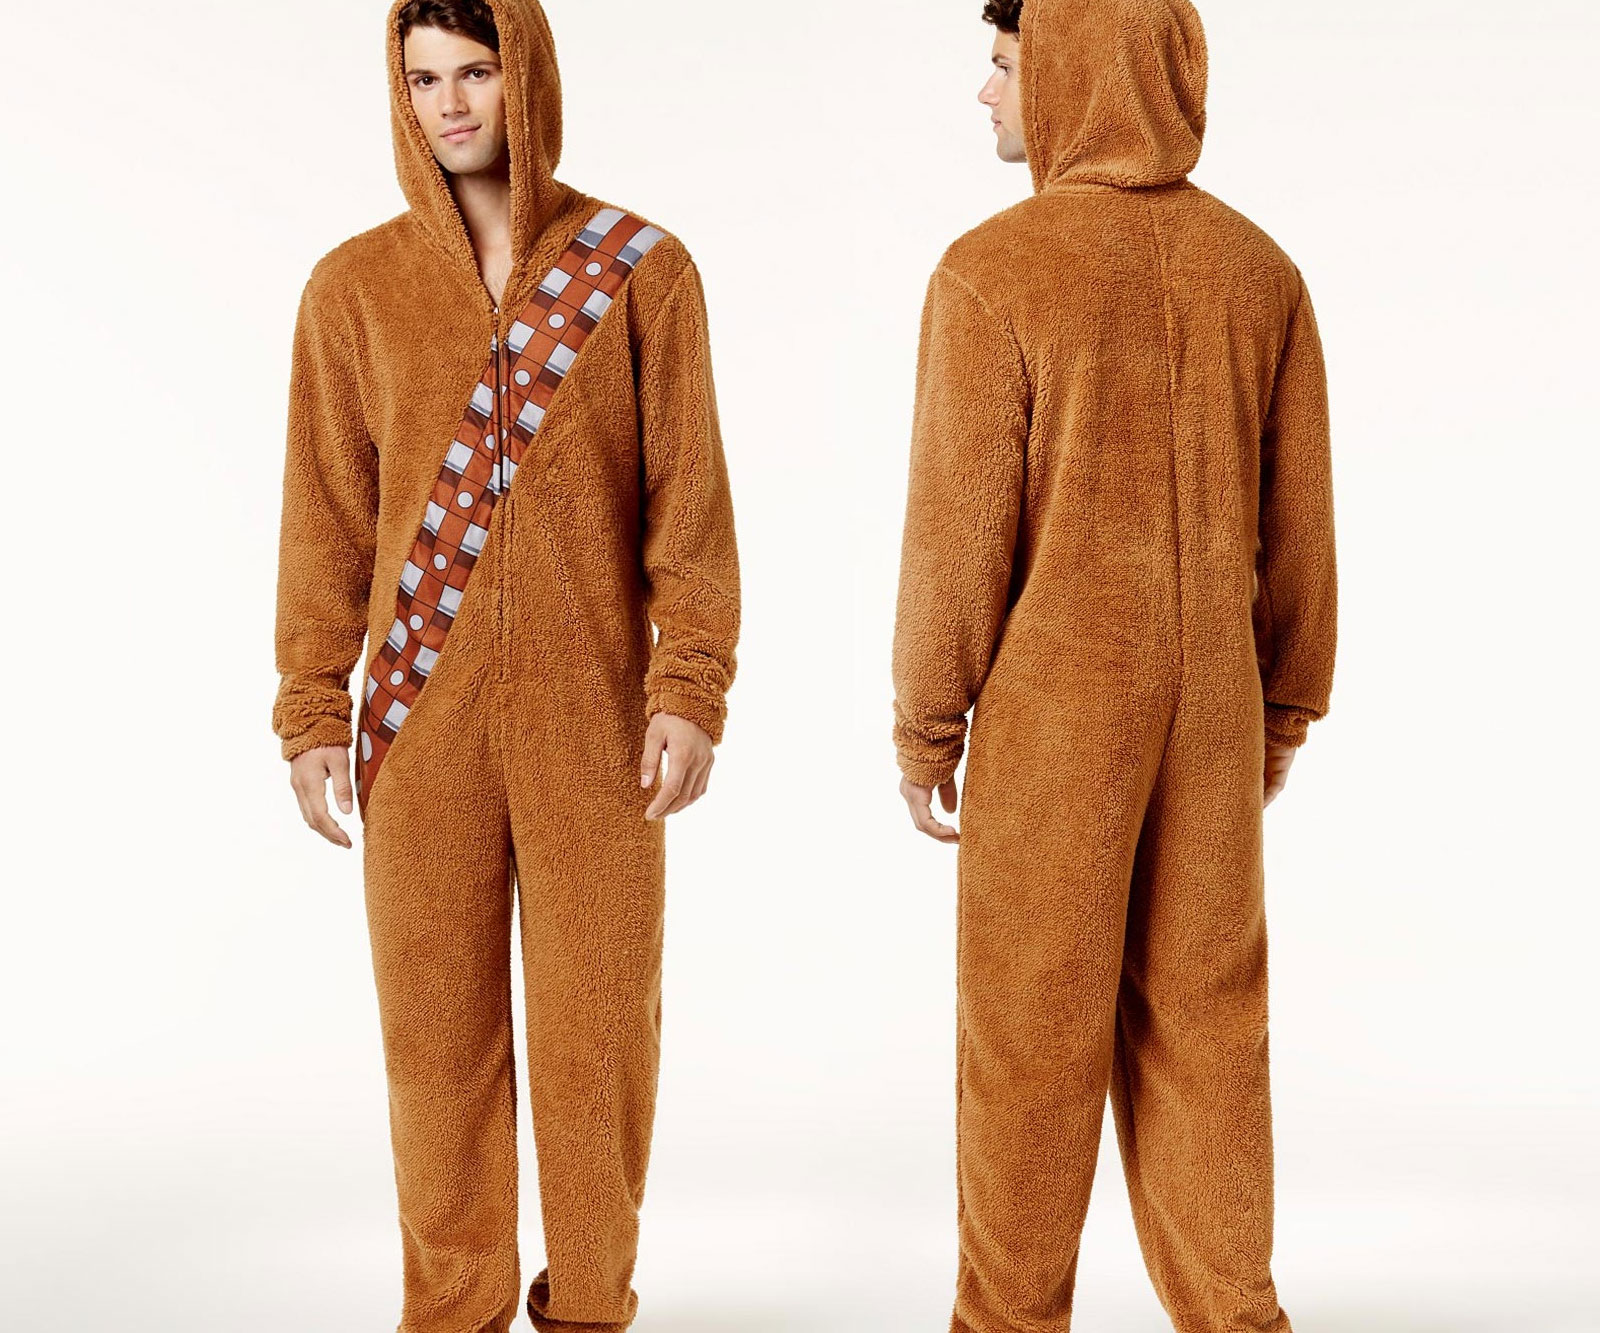 Chewbacca Adult Onesie - coolthings.us